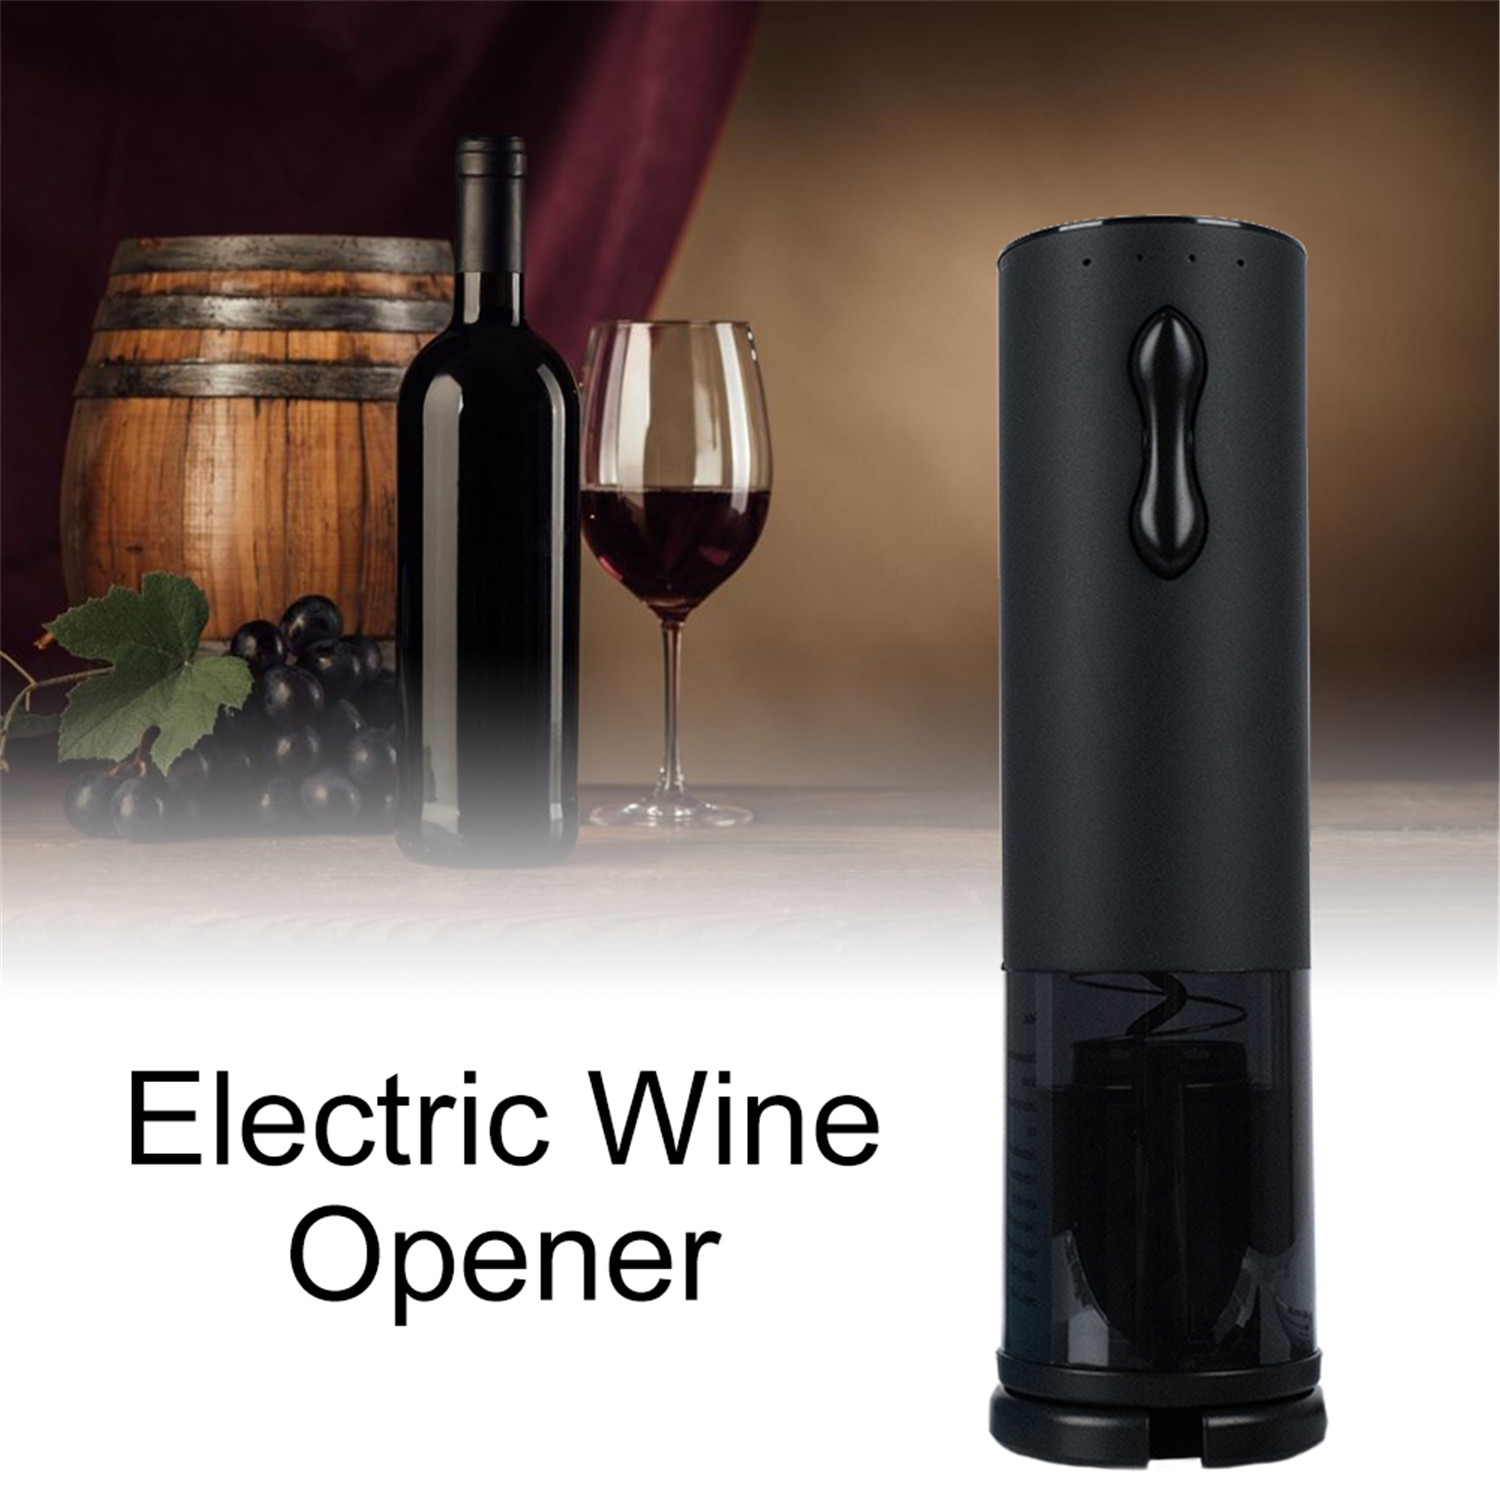 Battery Reminder USB Lithium Rechargeable Wine Bottle Opener Set Multifunctional Bar Drinkware Tool - Black